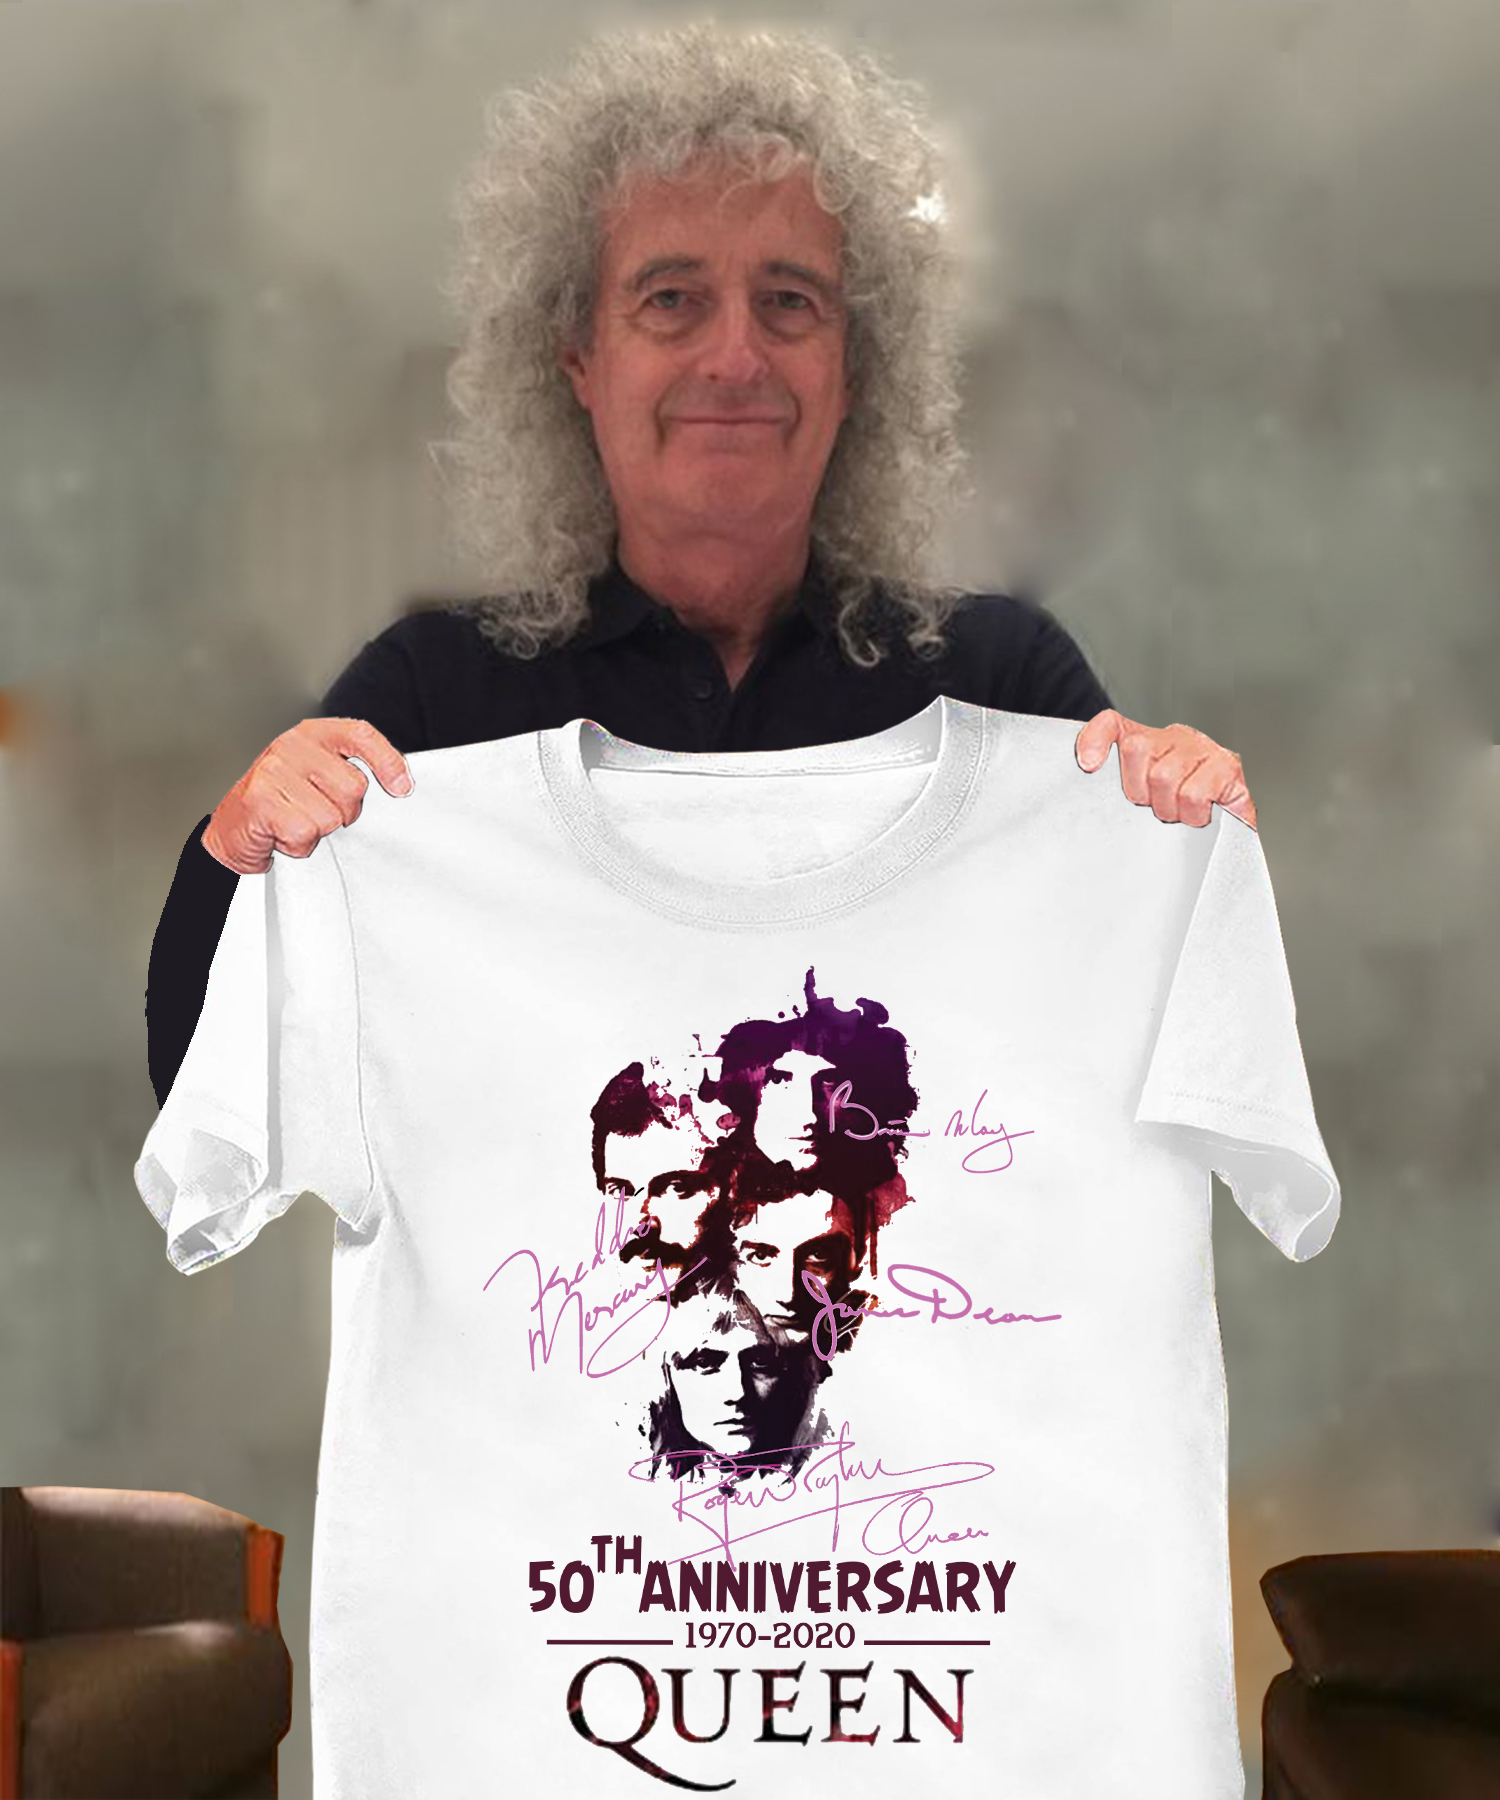 50th anniversary 1970-2020 queen Sweatshirt